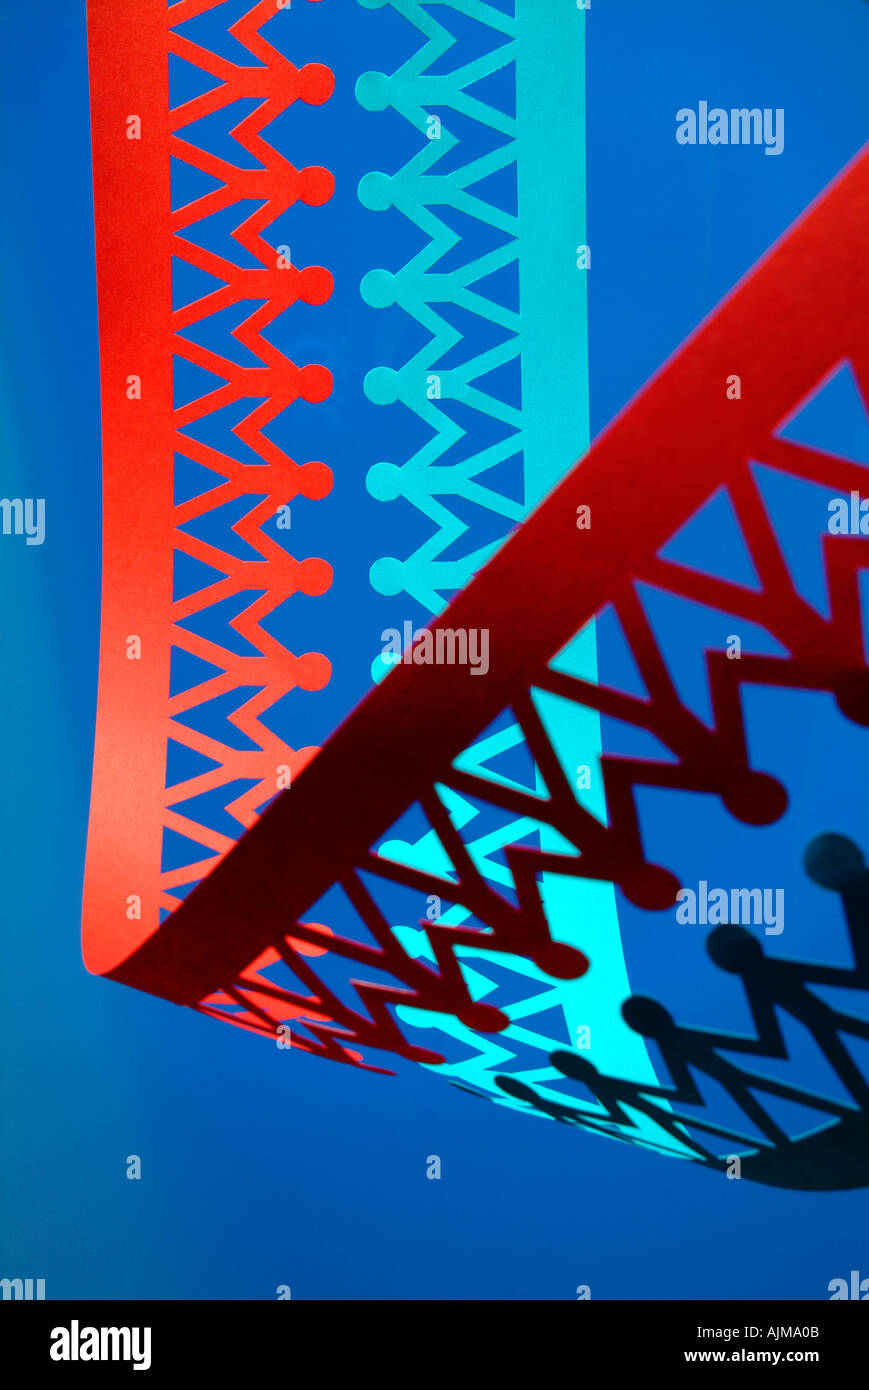 Paper chain peole as dna double helix - Stock Image